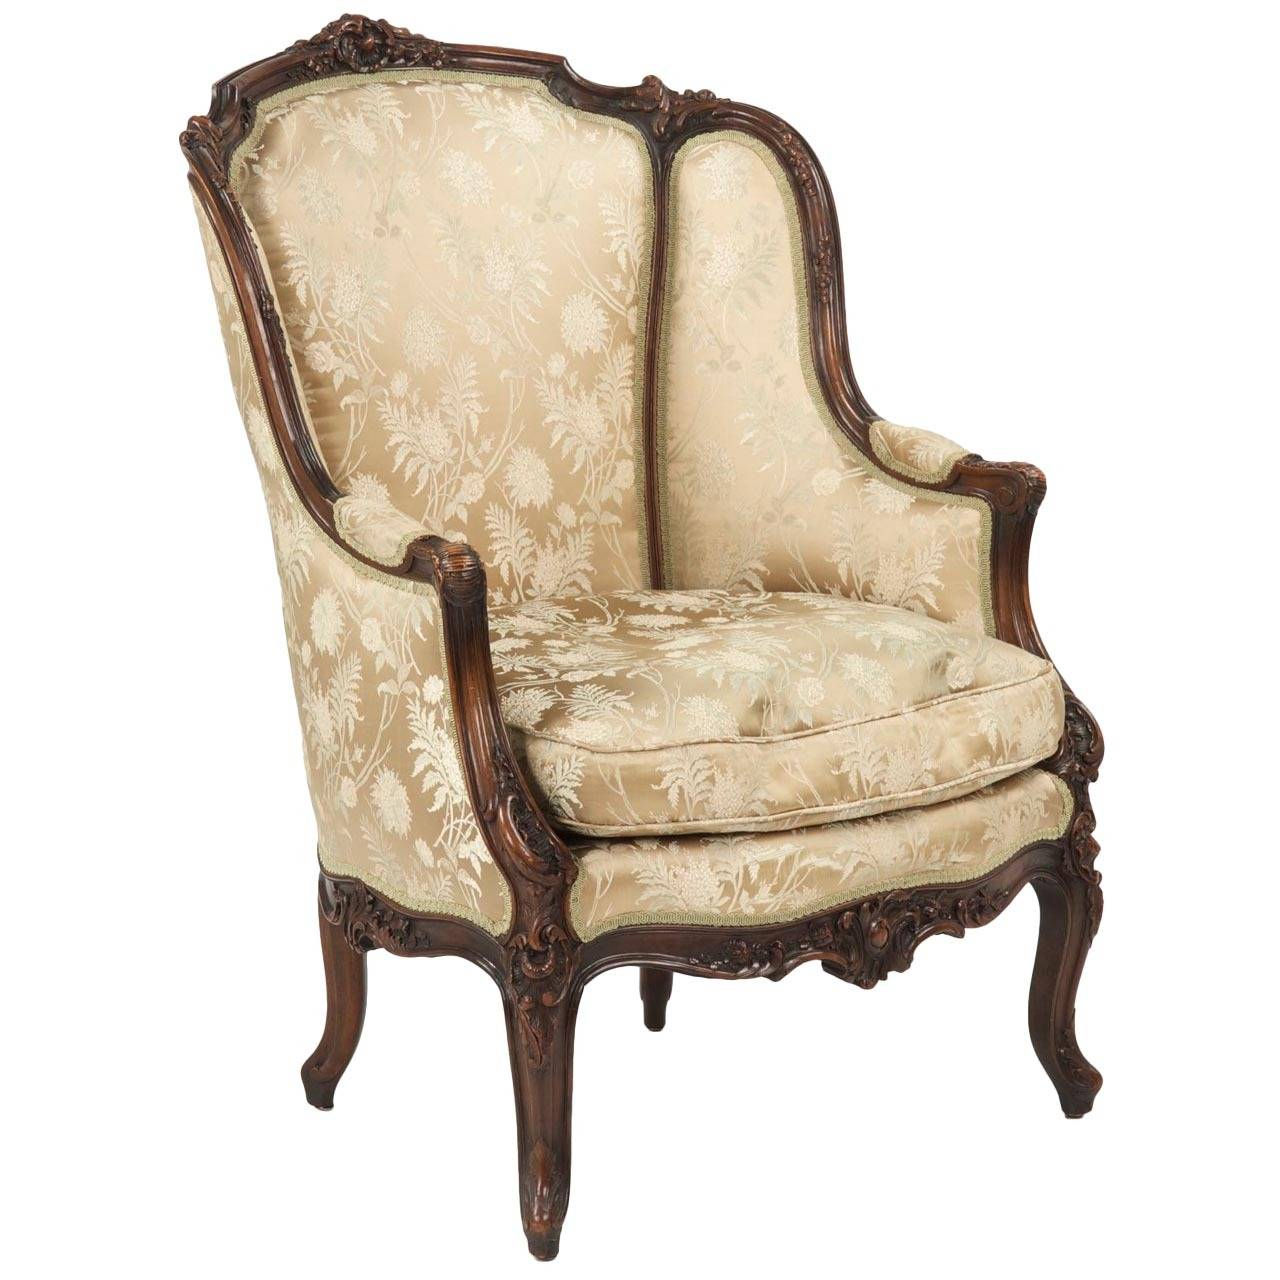 19th Century Rococo Revival Antique Bergere Armchair in